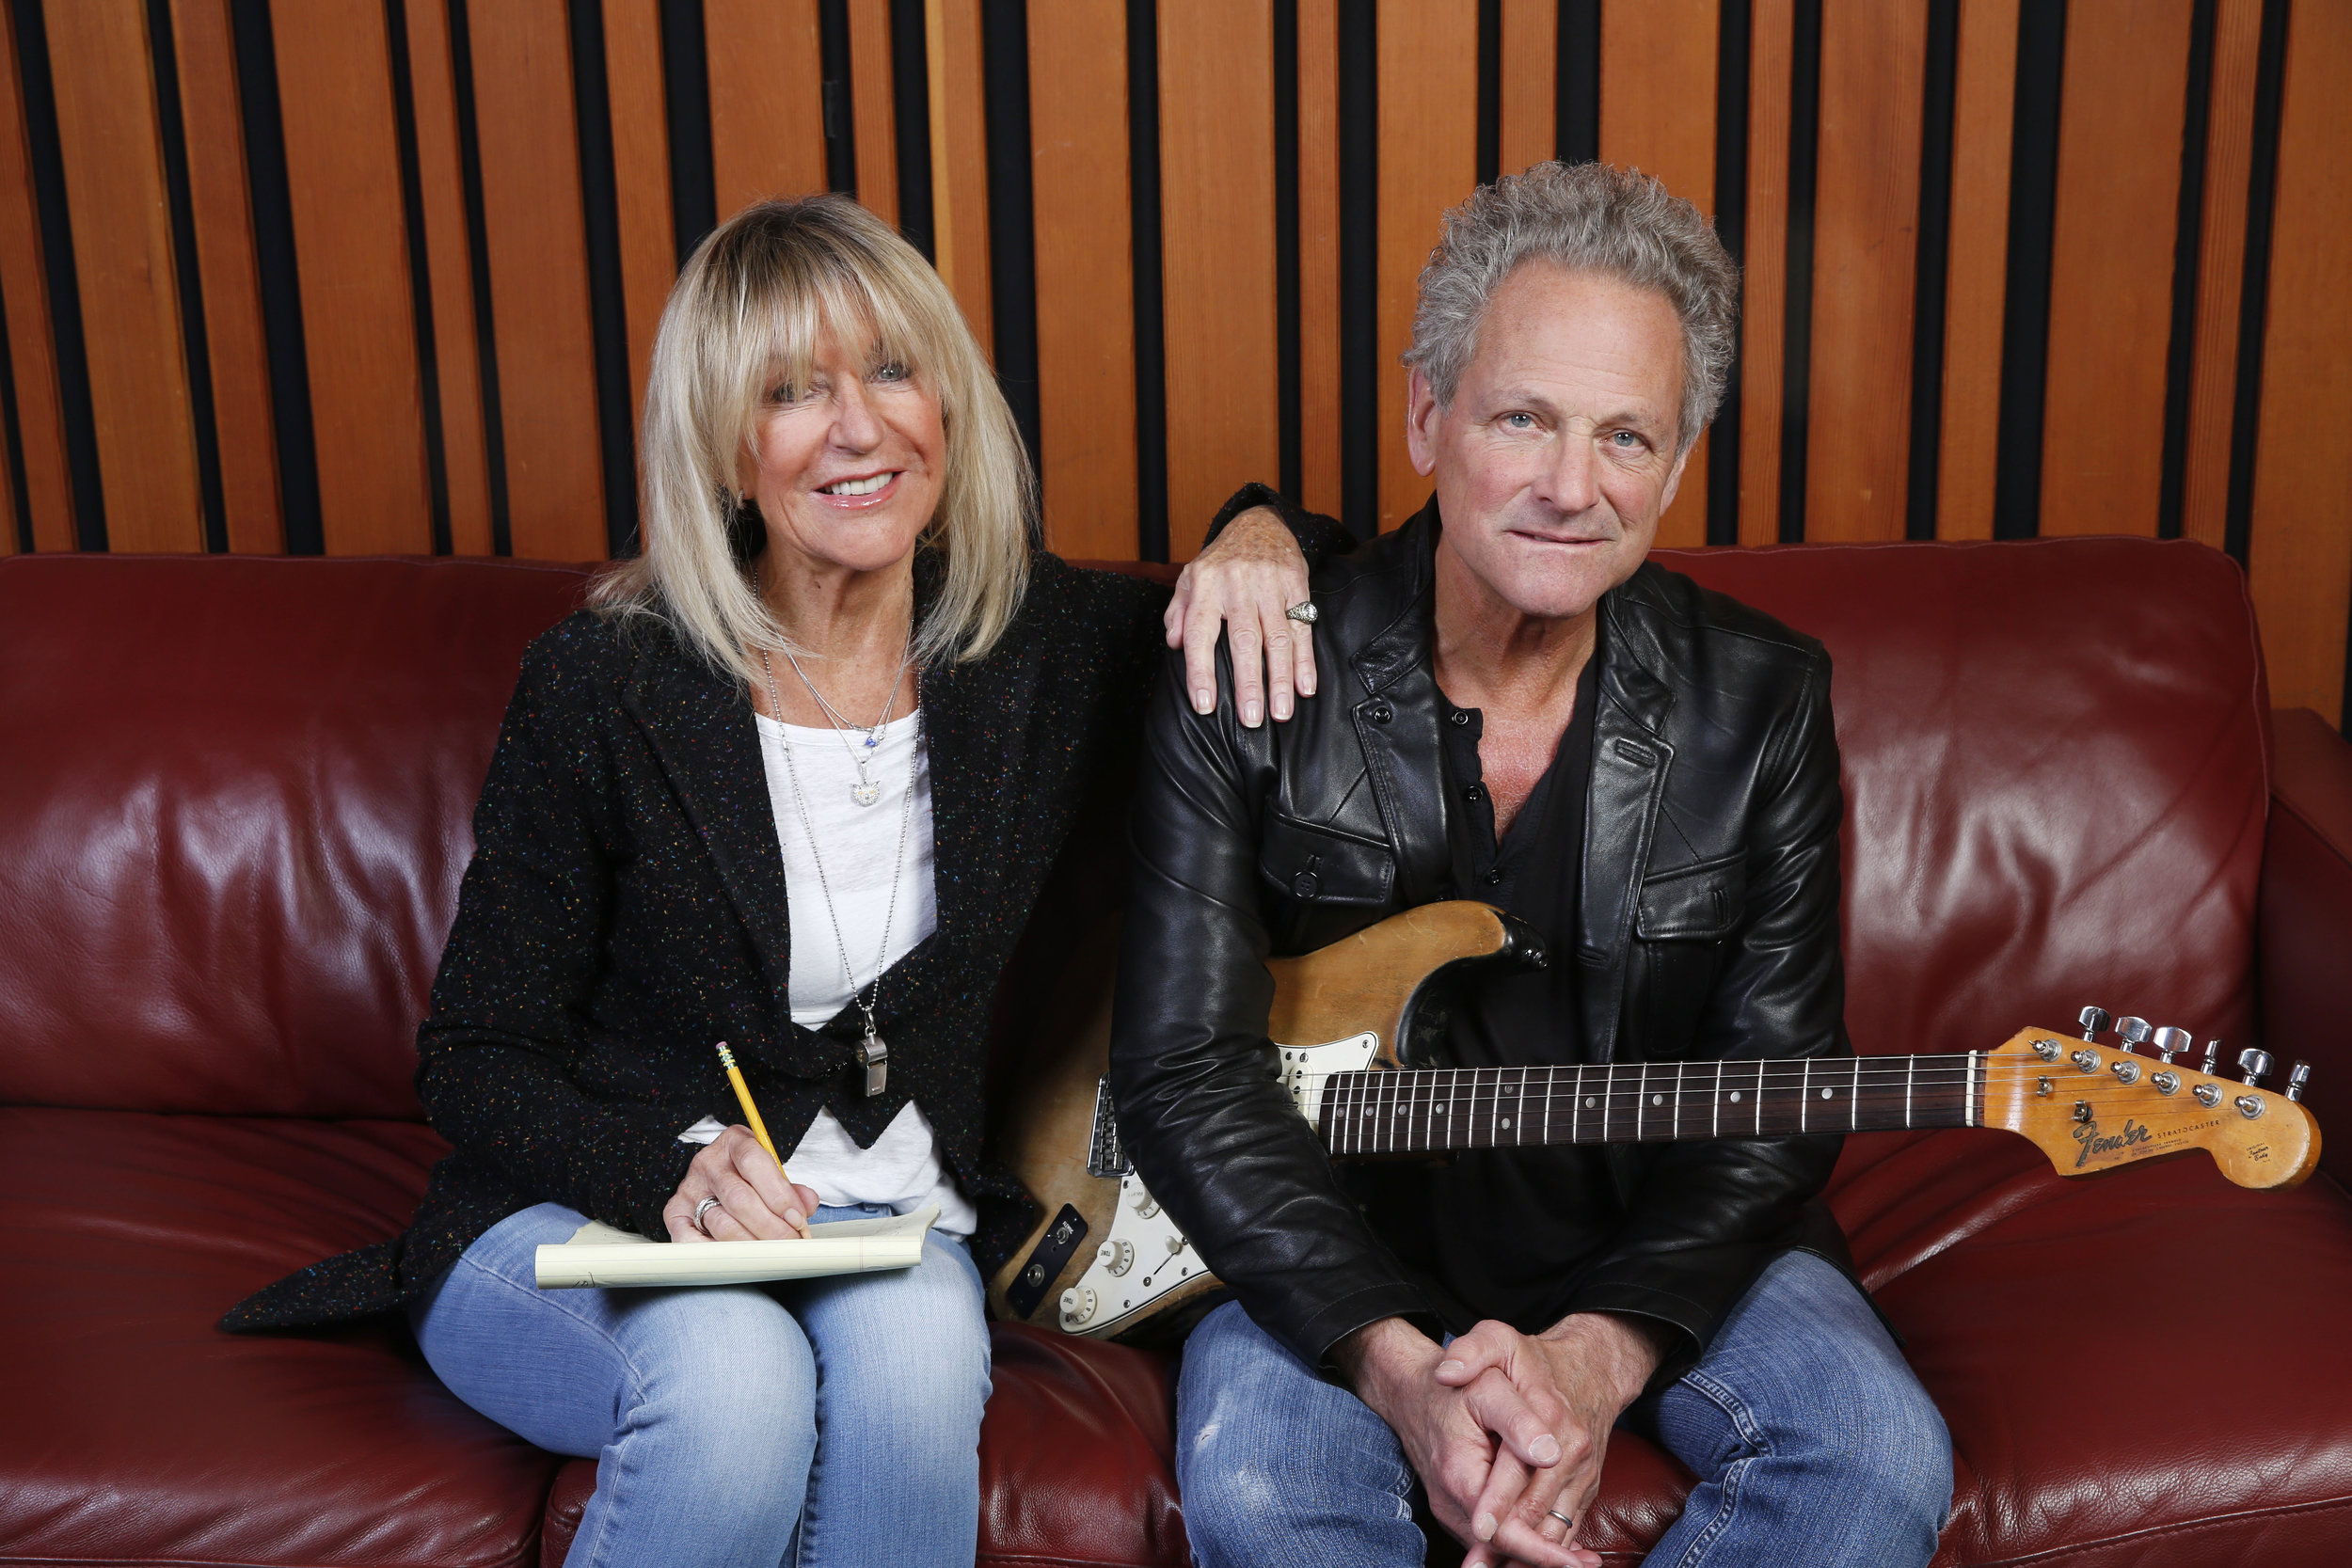 """Christine McVie and Lindsey Buckingham have announced a collaborative album tentatively called """"Buckingham McVie."""" Mr. Roberts interviewed the two, and broke the news of the collaboration."""